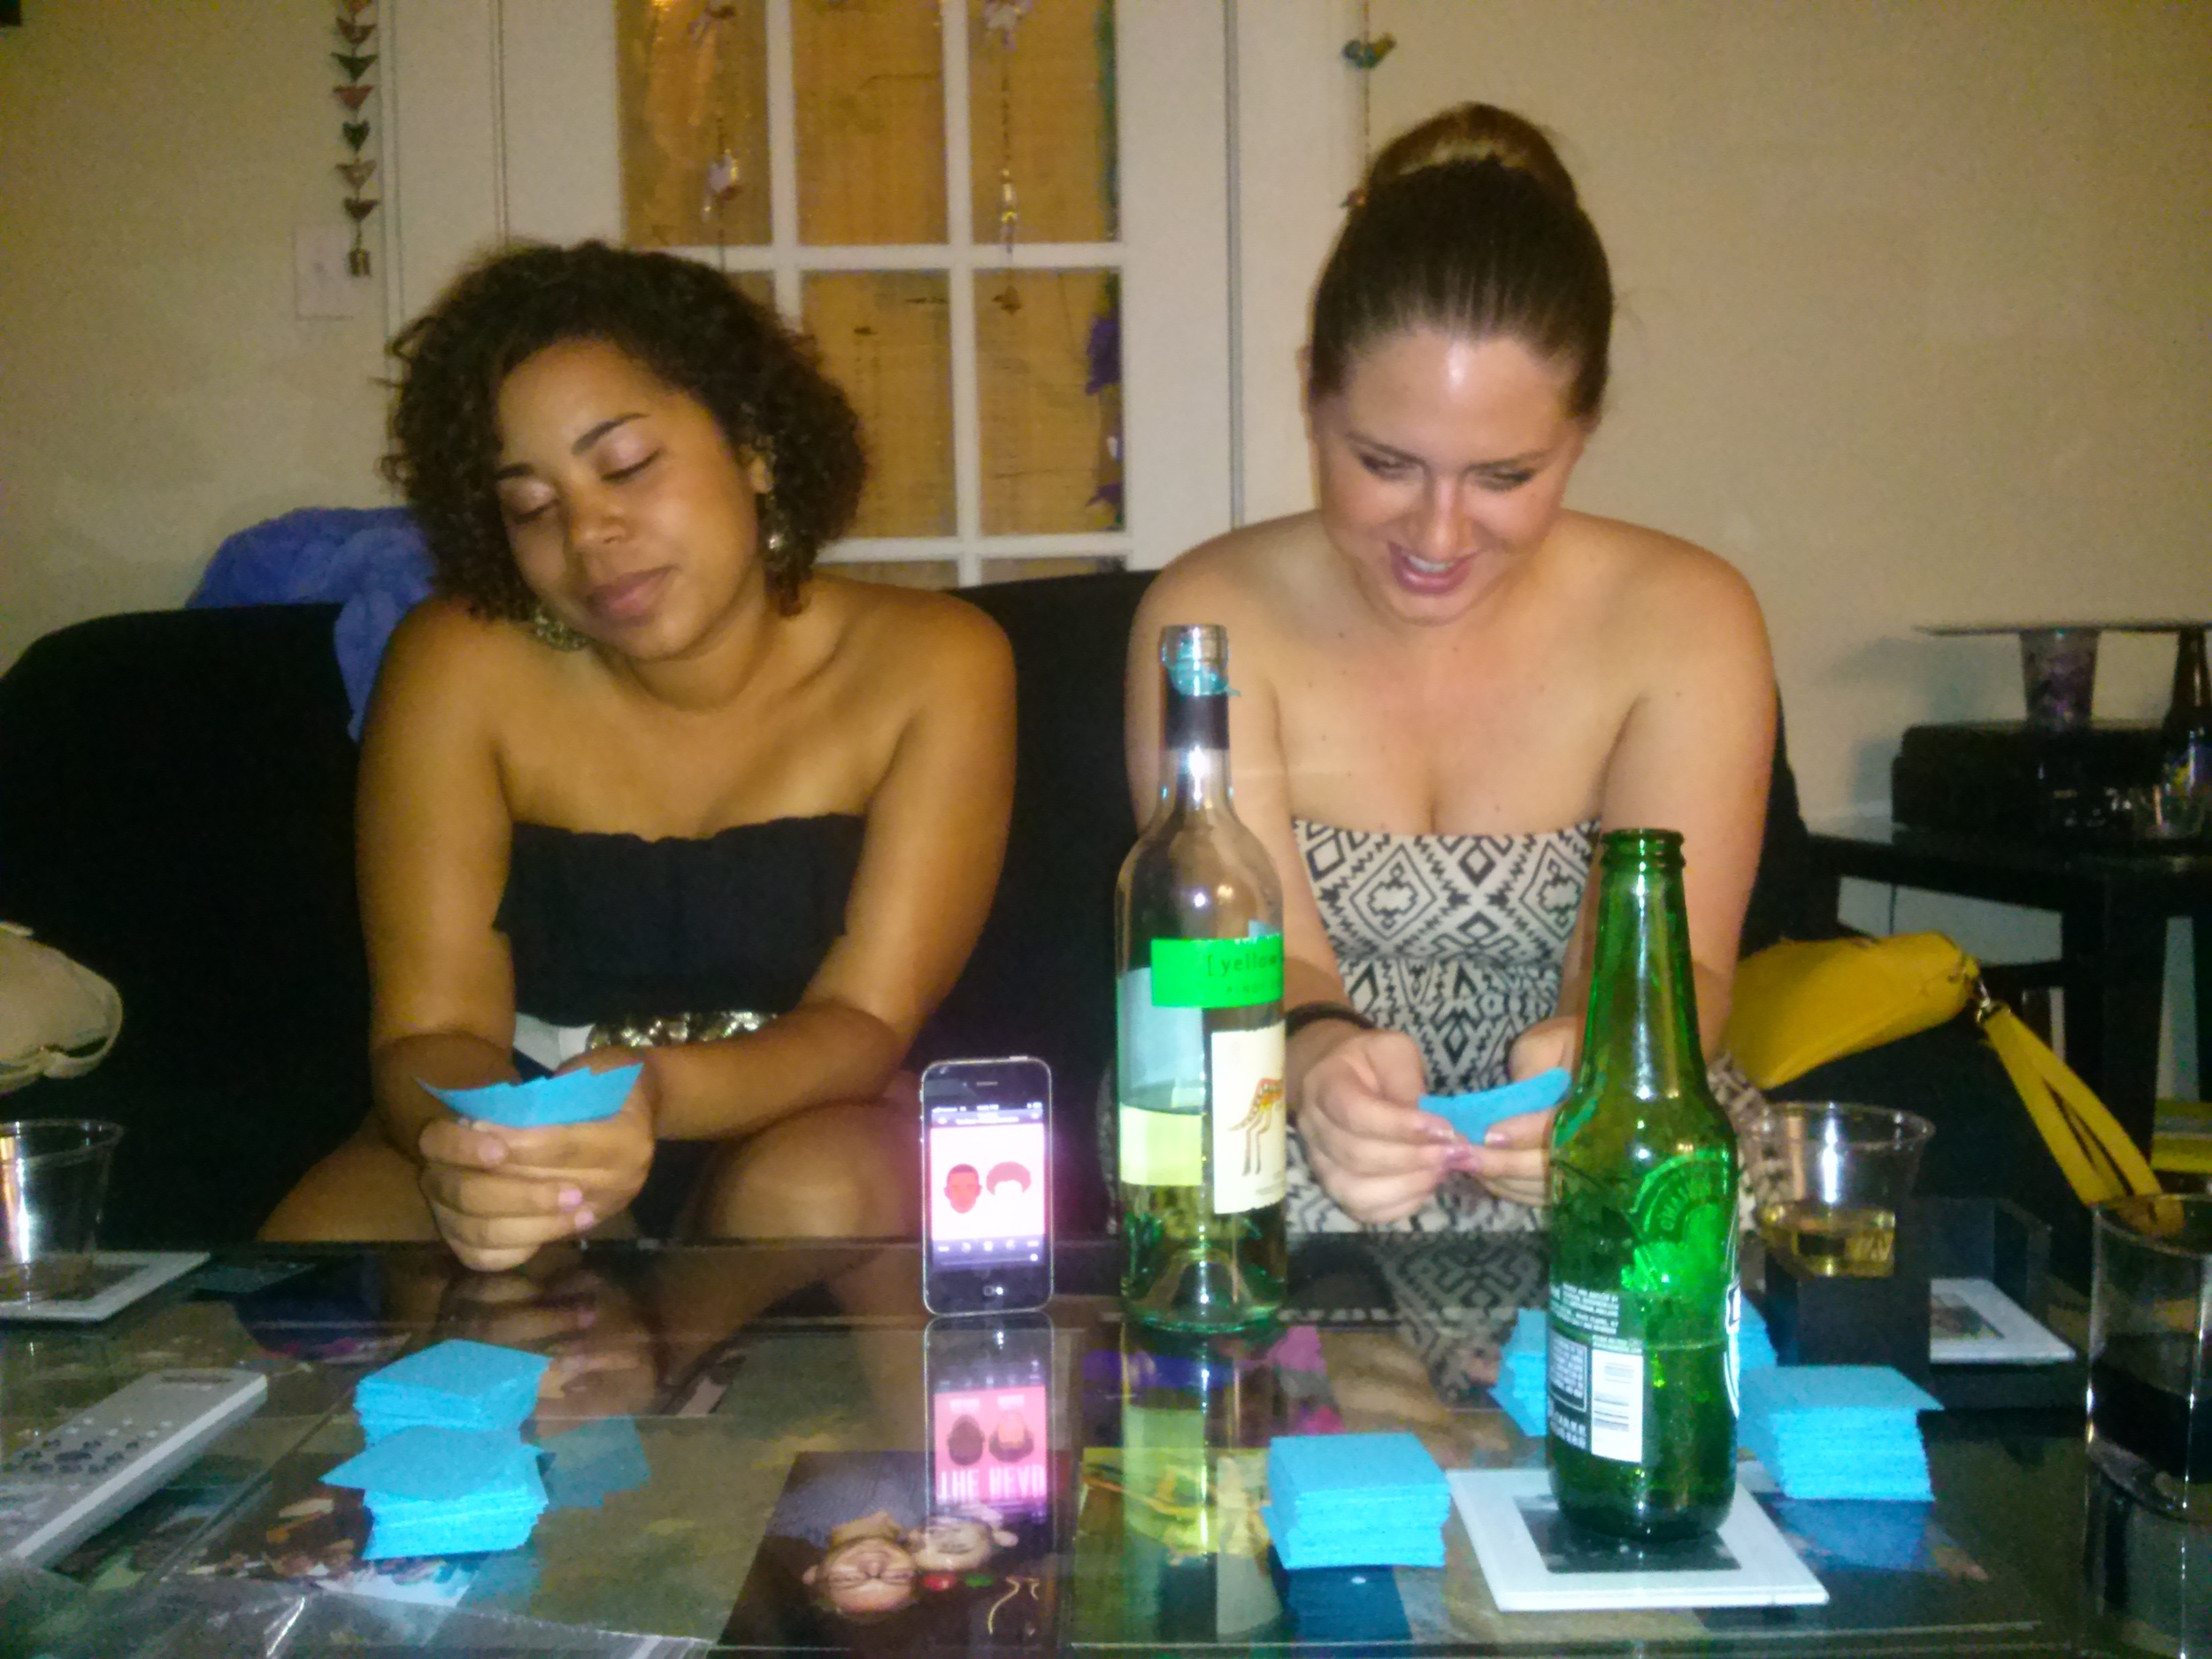 Casi and me (Bridget) listening to the read while playing cards against humanity in New Orleans, Louisiana. Xoxo